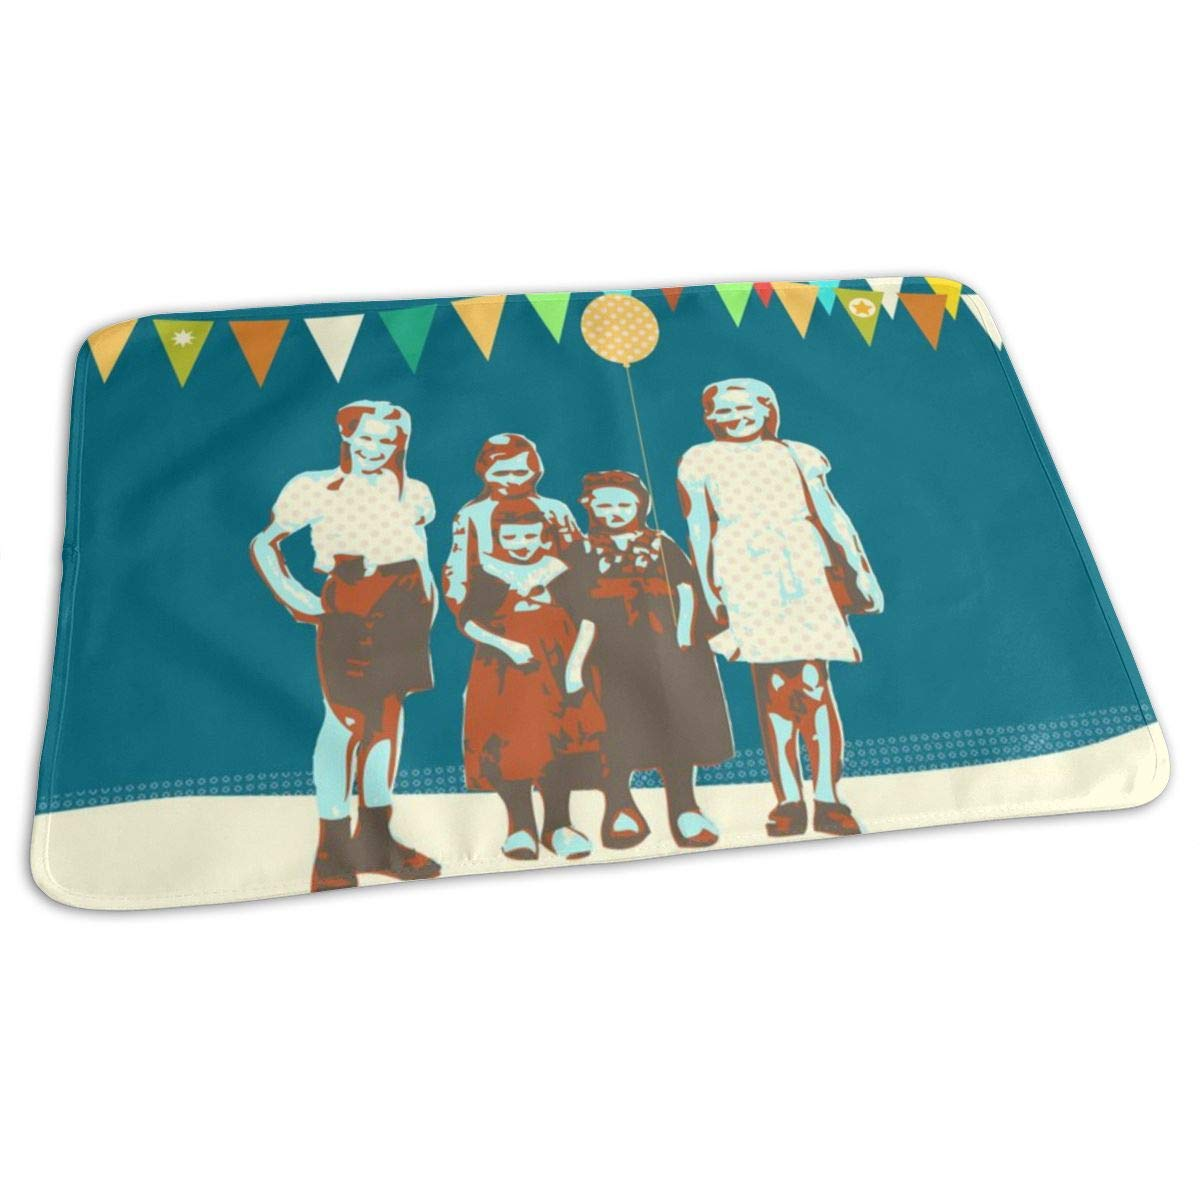 Time To Party Baby Portable Reusable Changing Pad Mat 19.7x27.5 inch